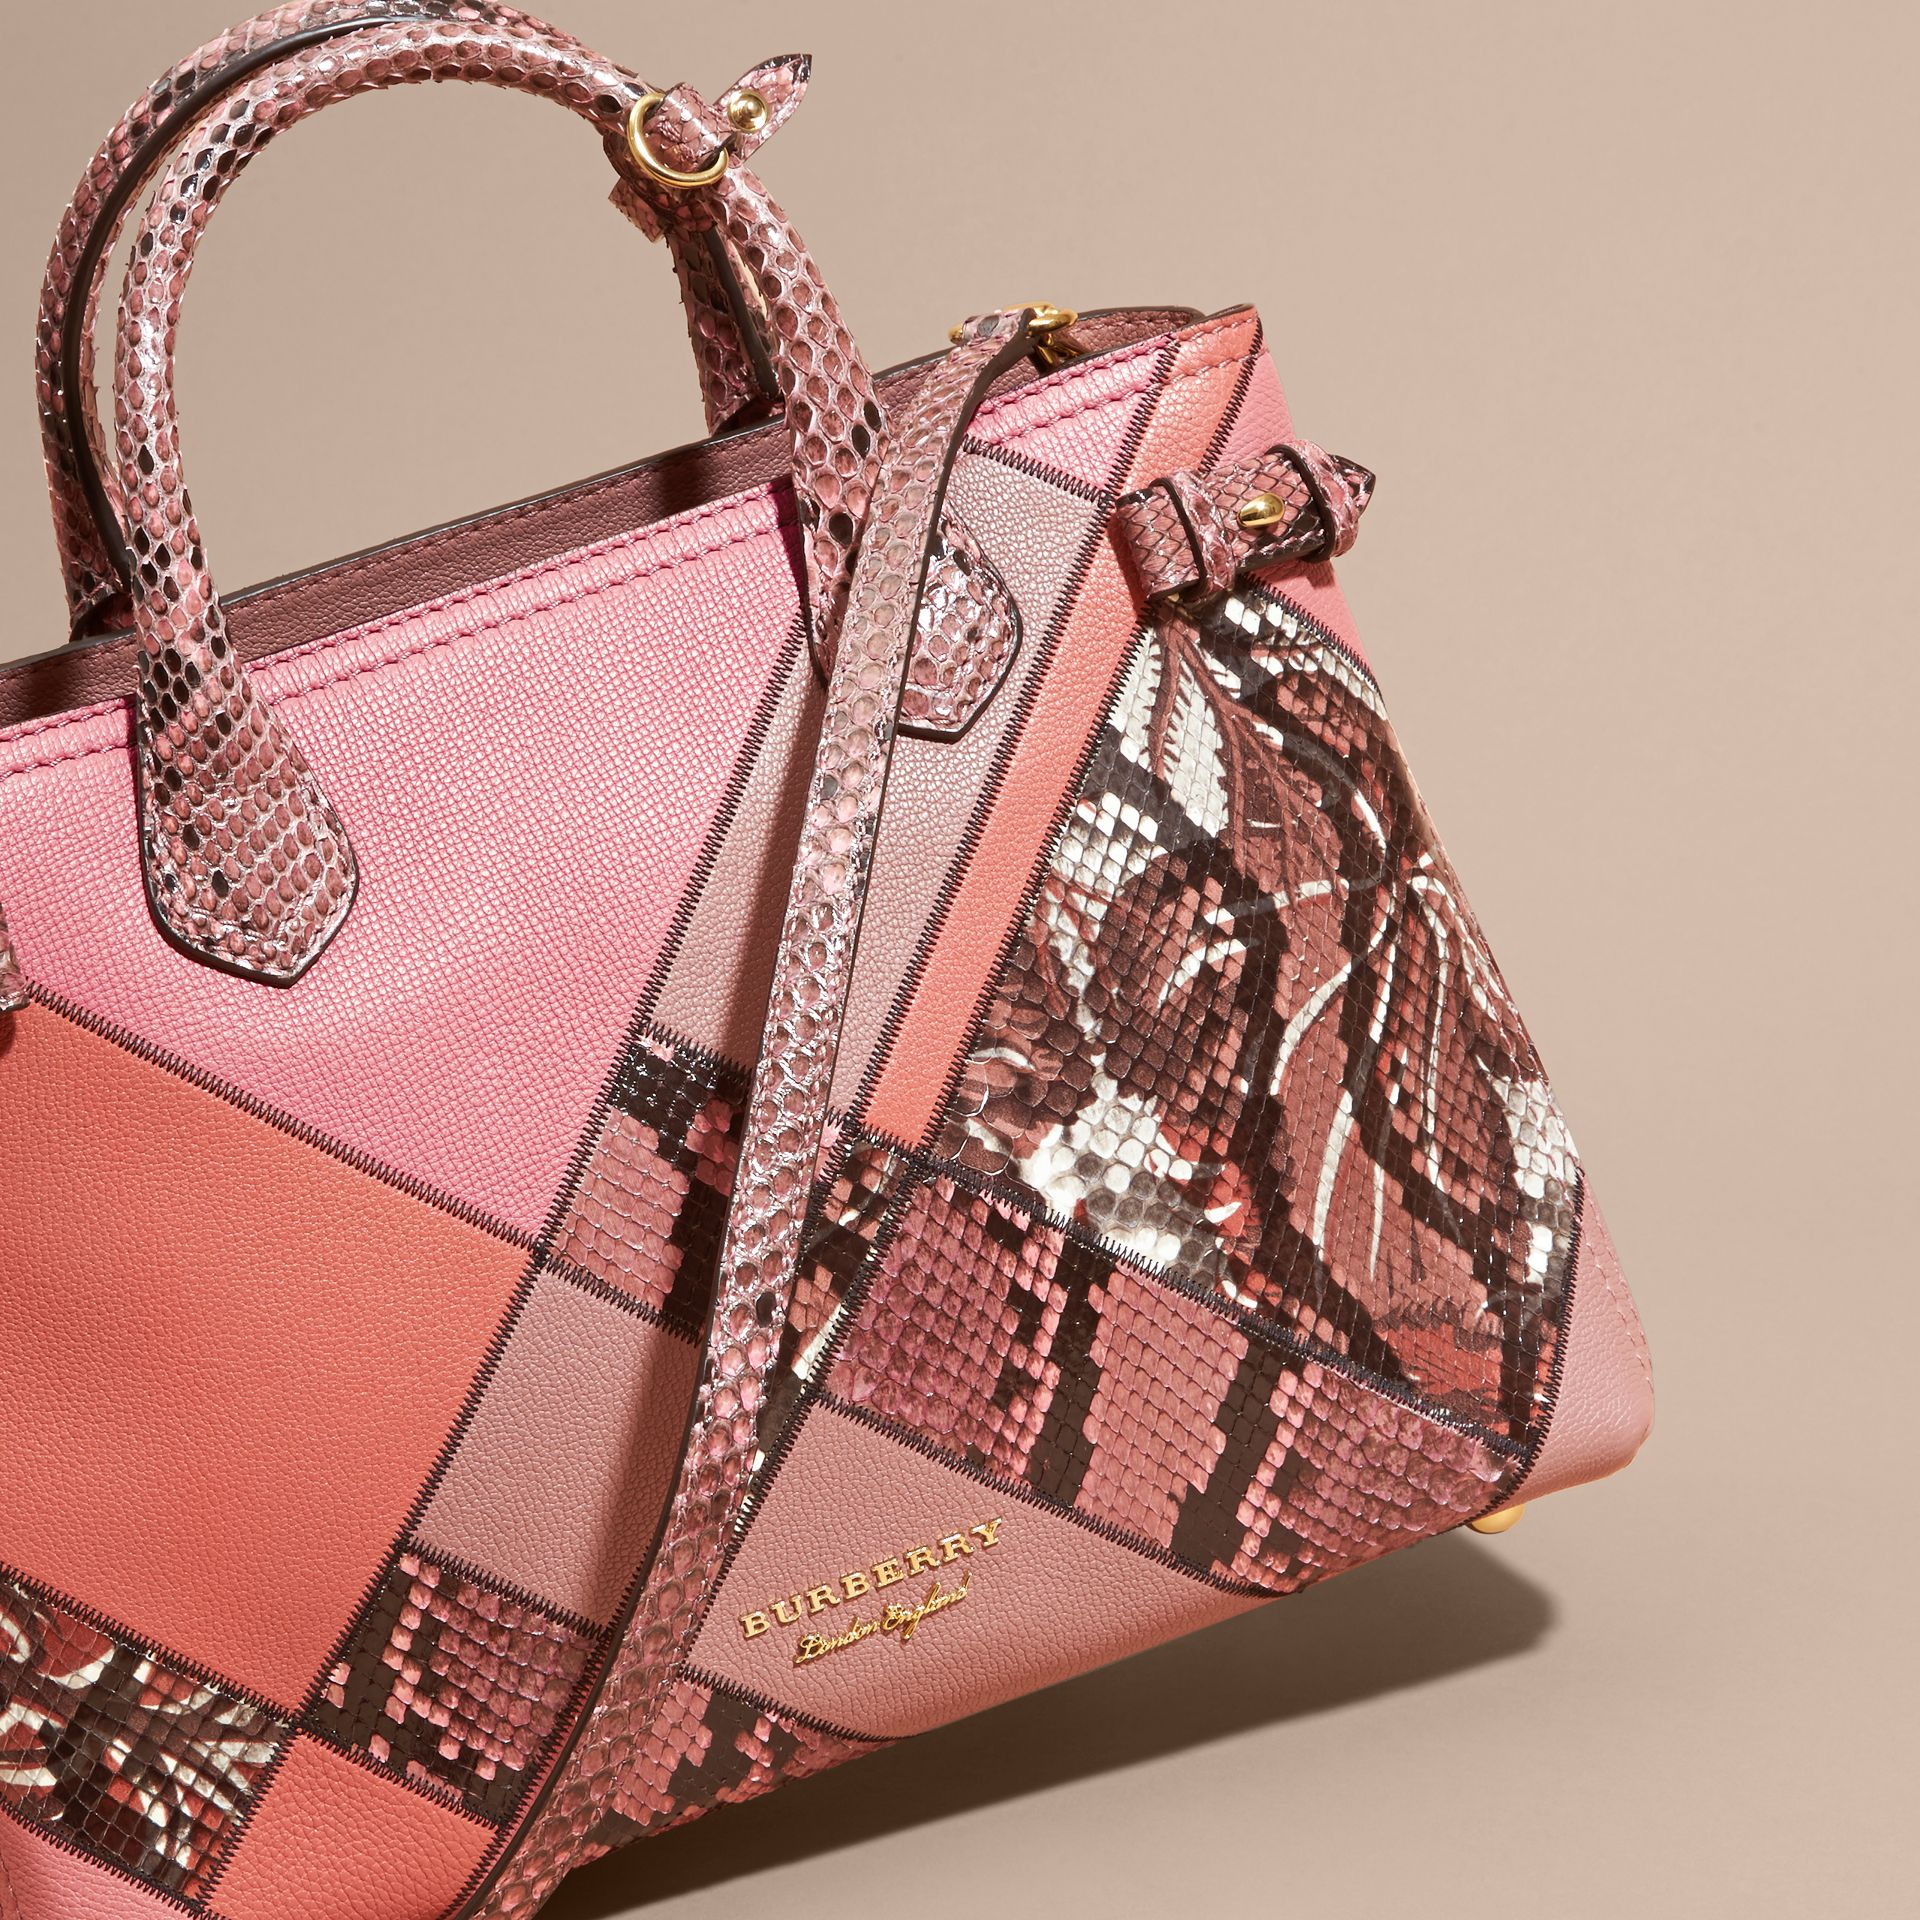 Sac The Banner medium en cuir et python façon patchwork (Rose Cendré) - Femme | Burberry Canada - photo de la galerie 6